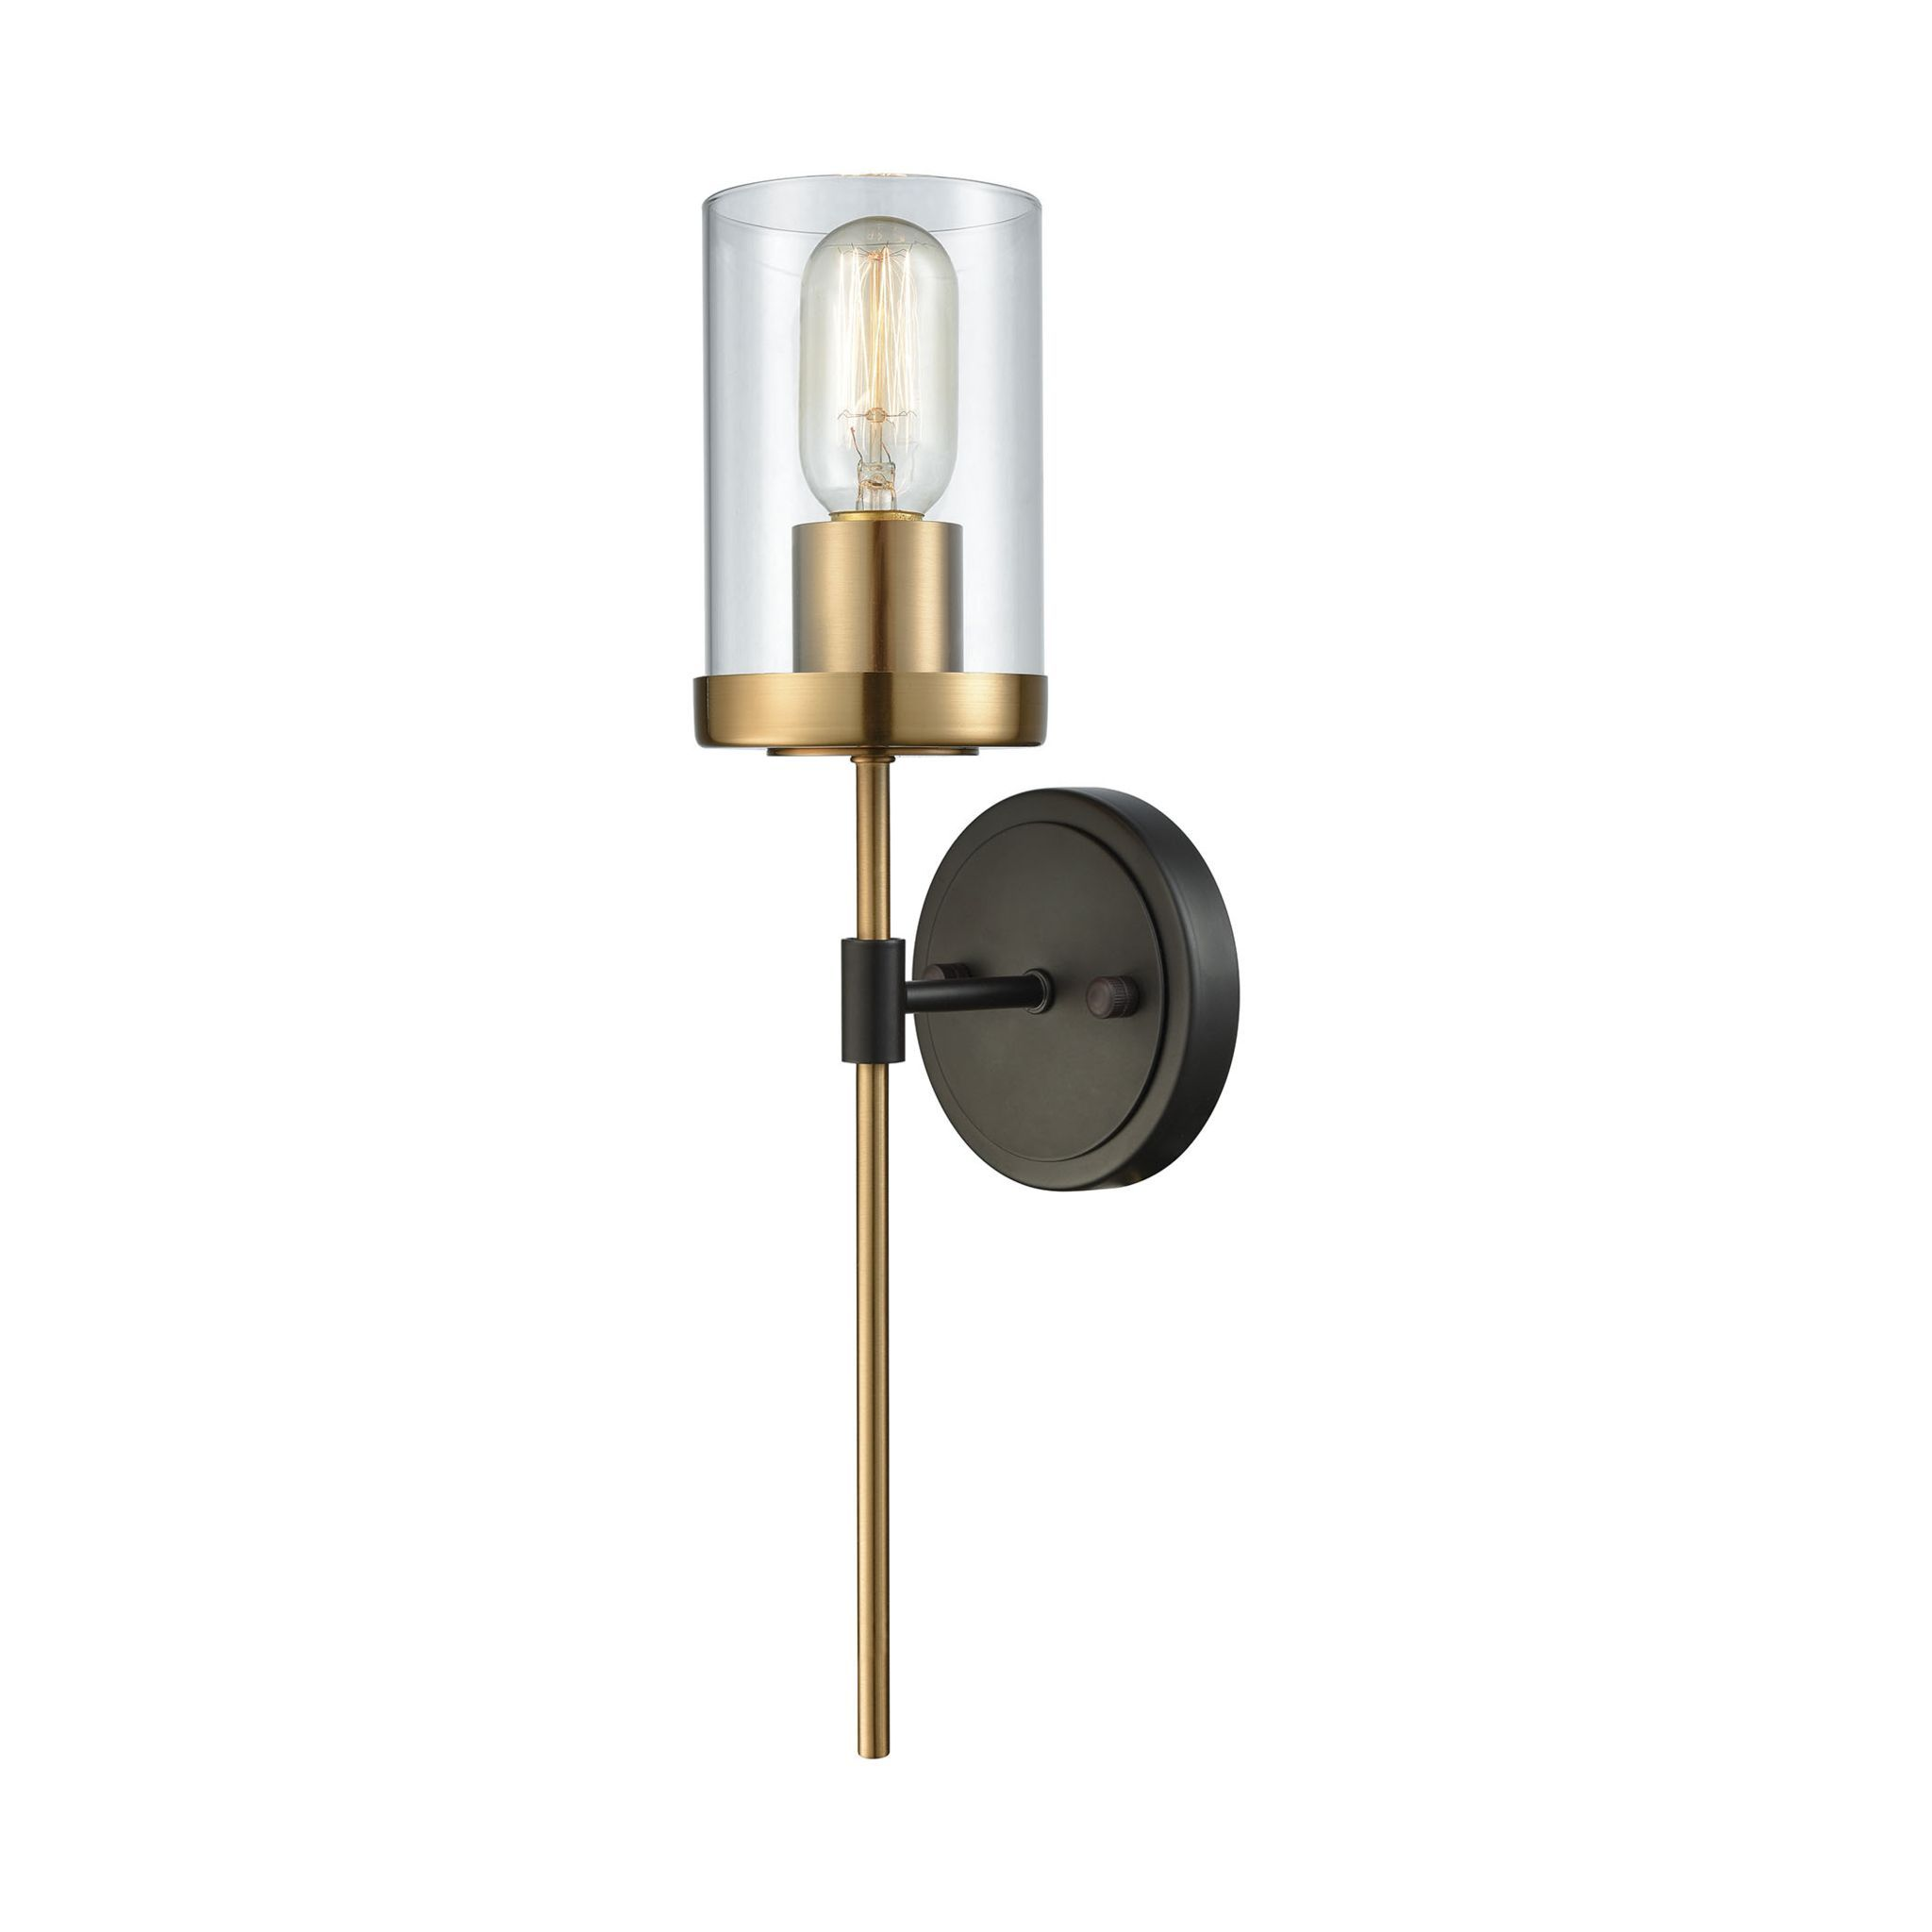 vanity industrial and century vertical listing il modern mid gold fullxfull ul offset listed black bathroom brass light bulb sconce wall